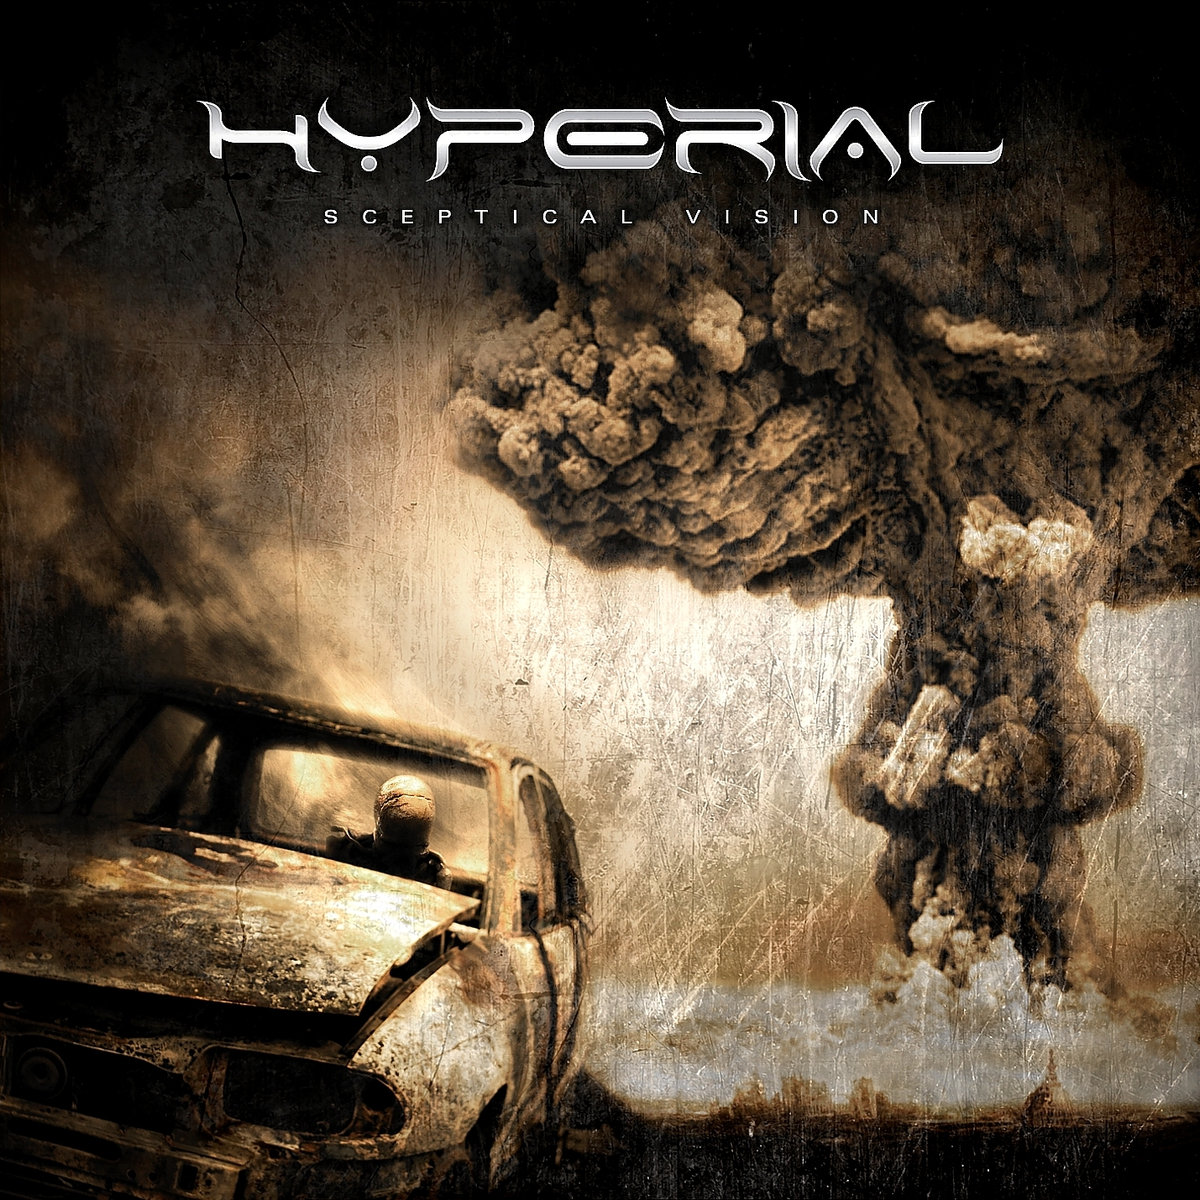 12. Hyperial - Sceptical Vision